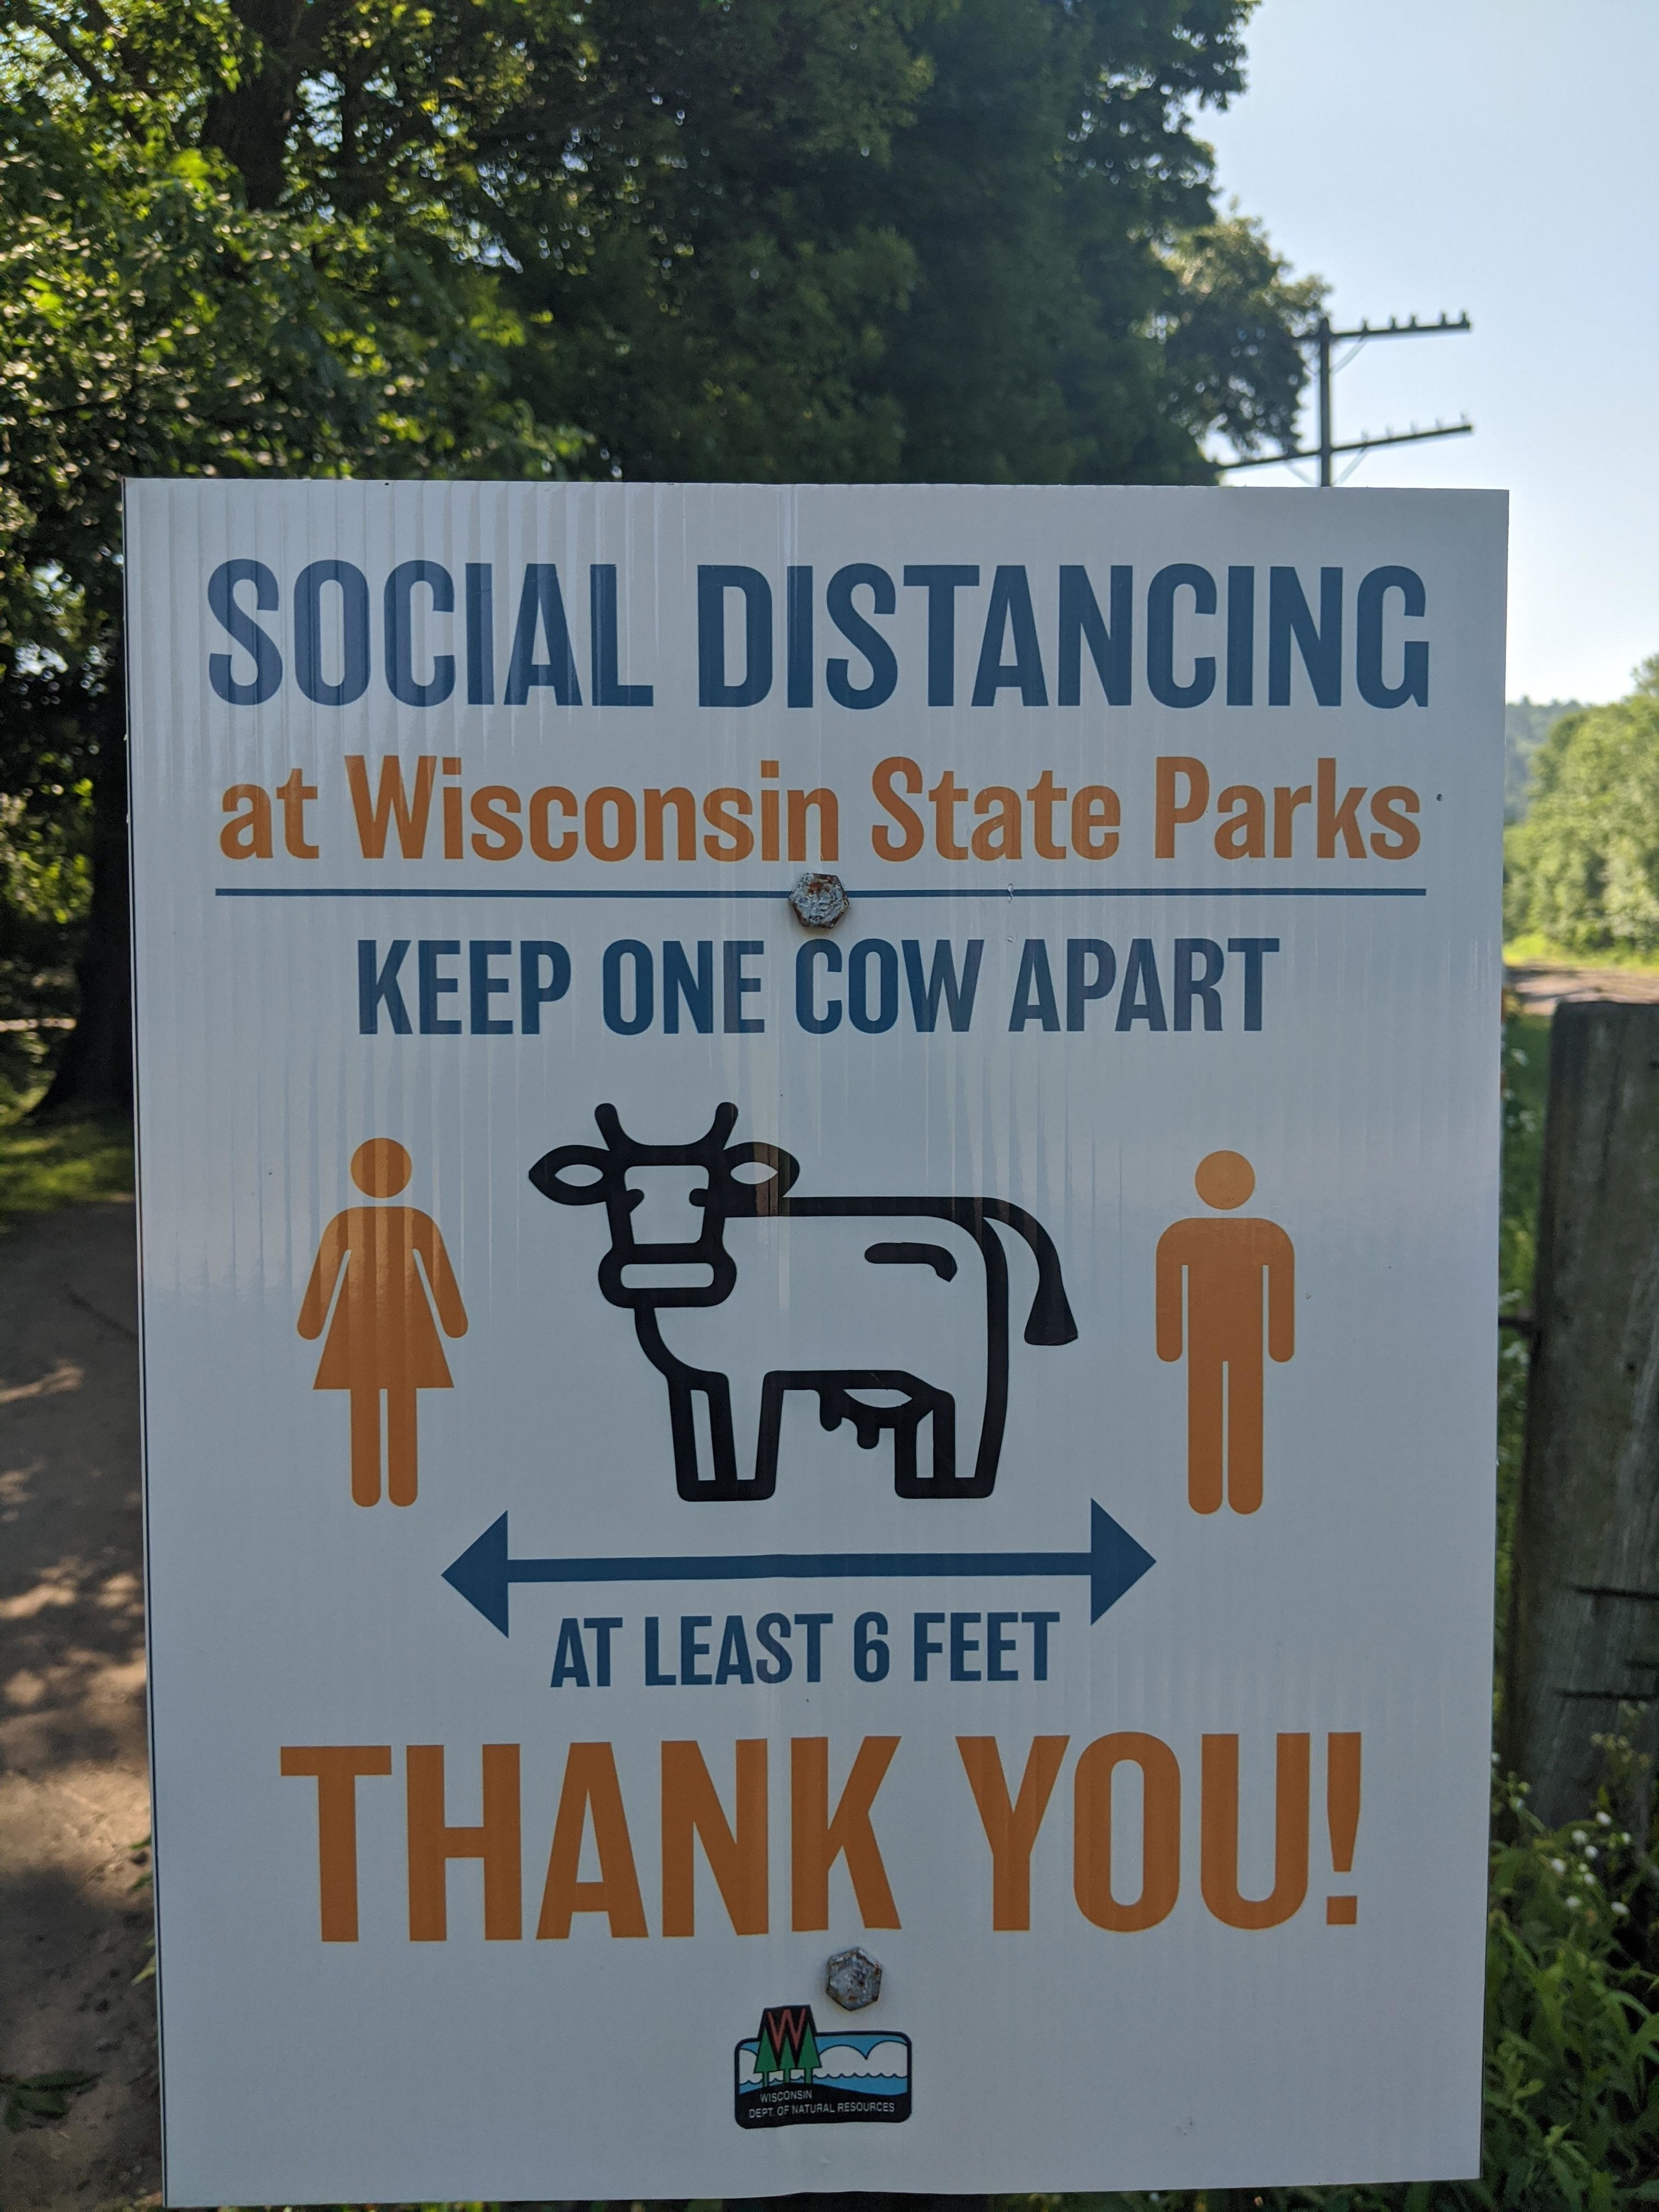 A sign in a park